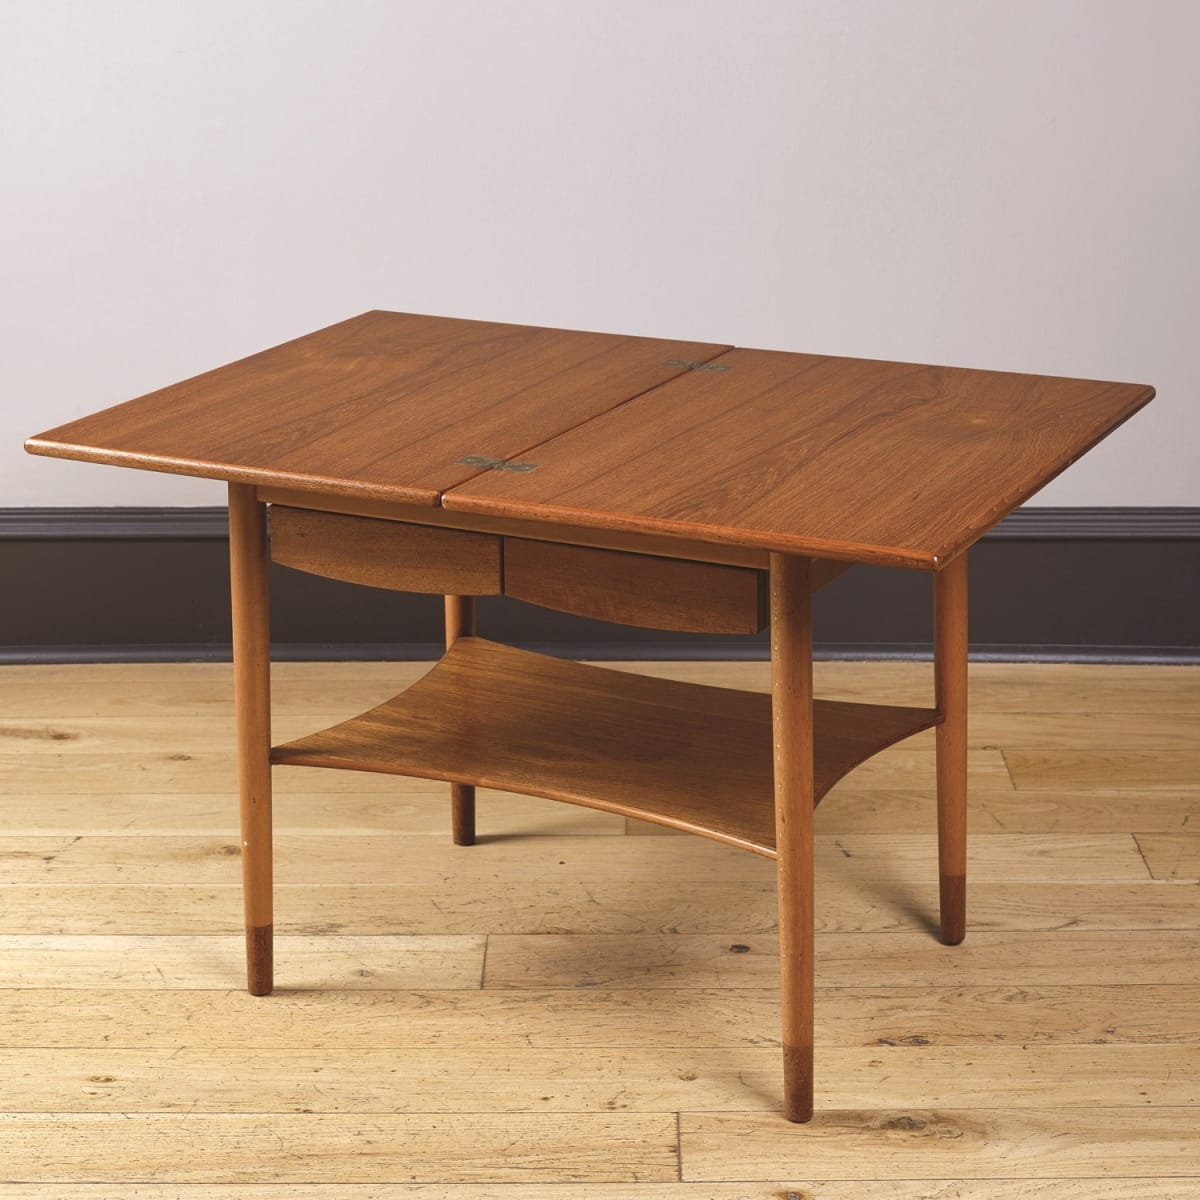 Borge Mogensen Card table teak and beech 24 x 26 (38 extended) x 19 inches